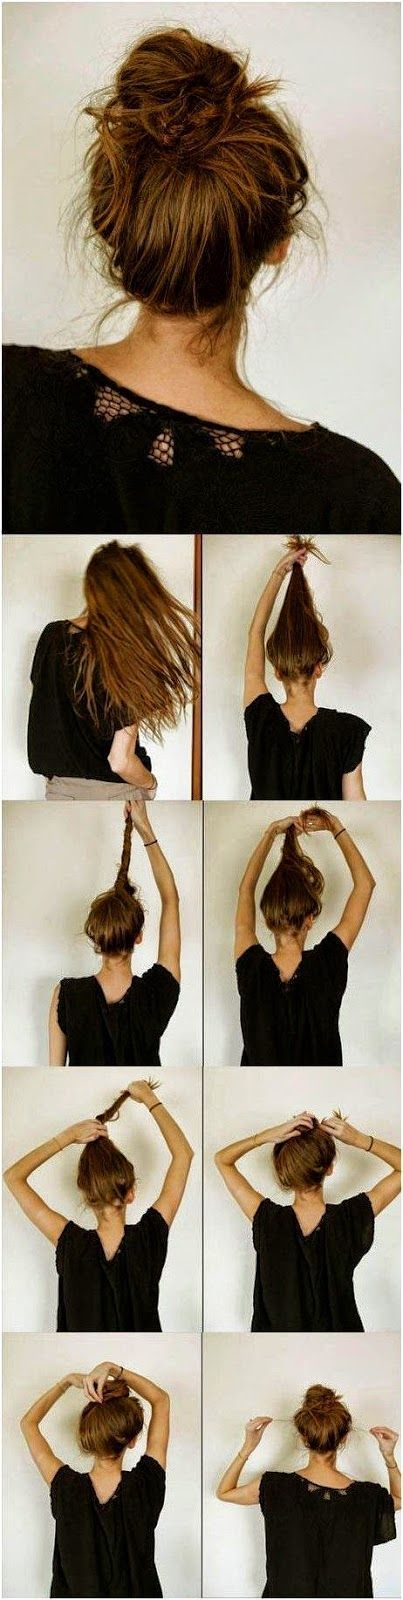 Awe Inspiring 1000 Ideas About Easy Bun Hairstyles On Pinterest Easy Bun Bun Hairstyle Inspiration Daily Dogsangcom